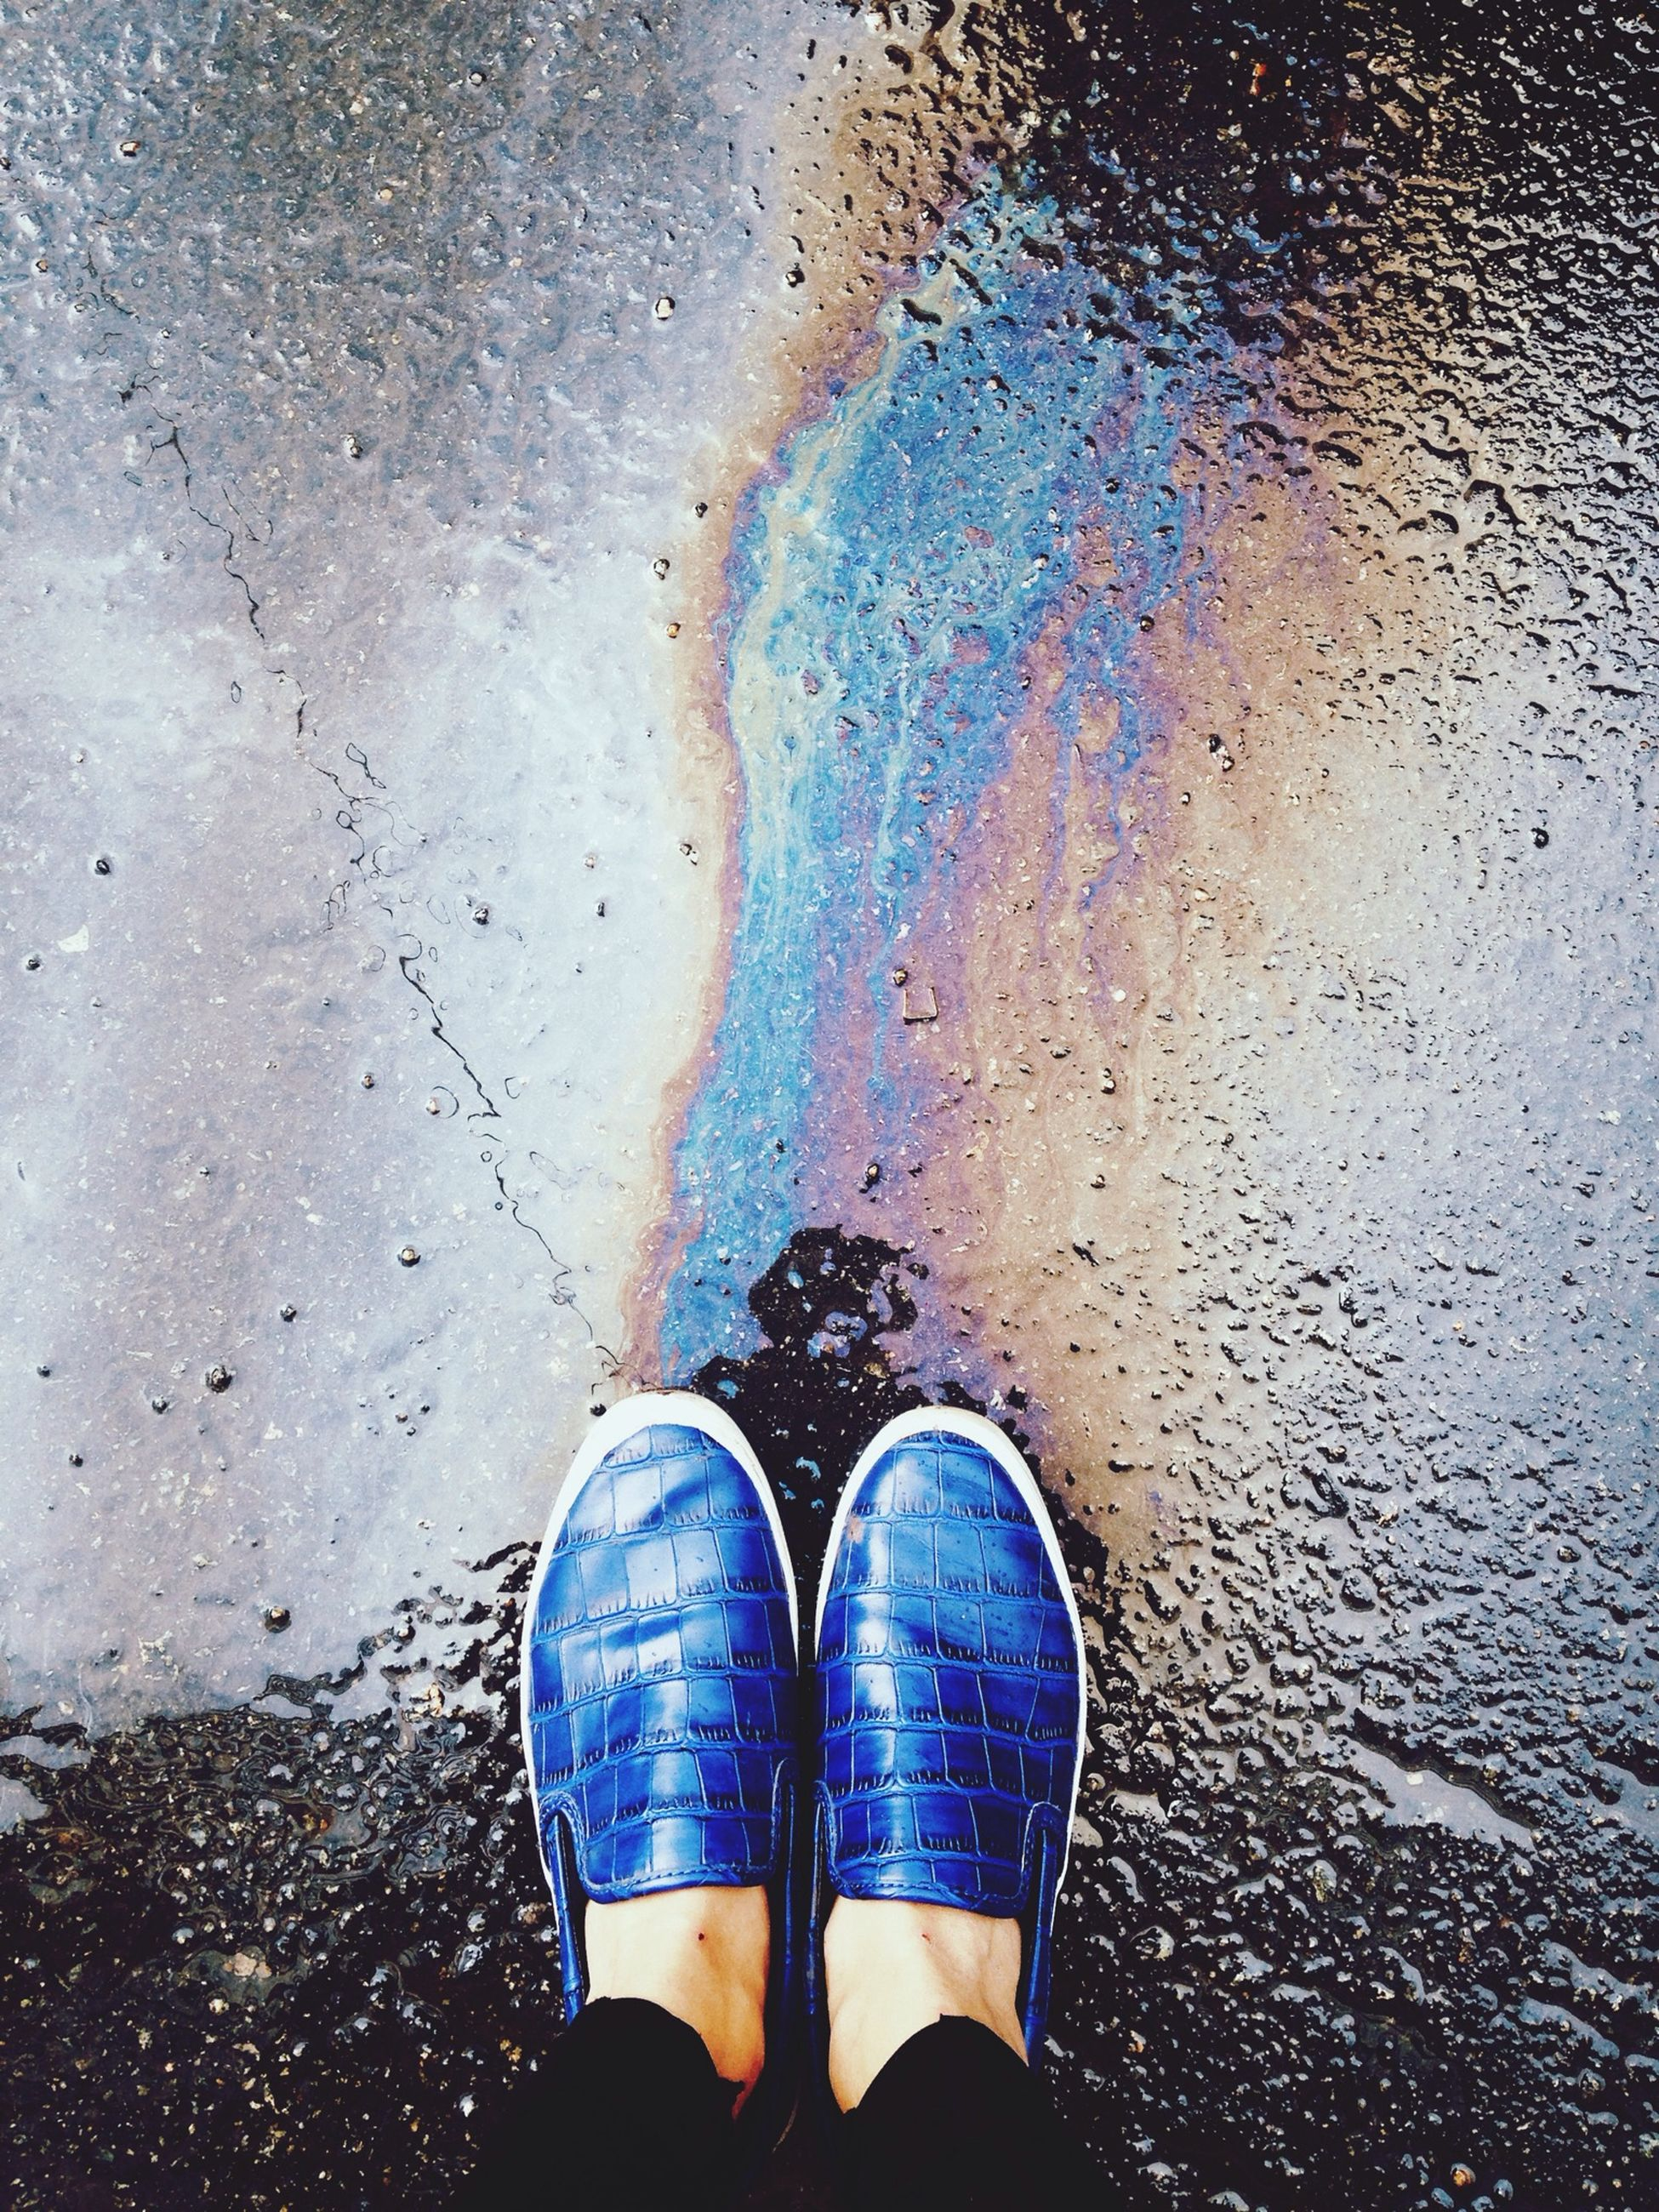 low section, person, water, wet, standing, shoe, lifestyles, street, personal perspective, human foot, rain, reflection, leisure activity, puddle, men, outdoors